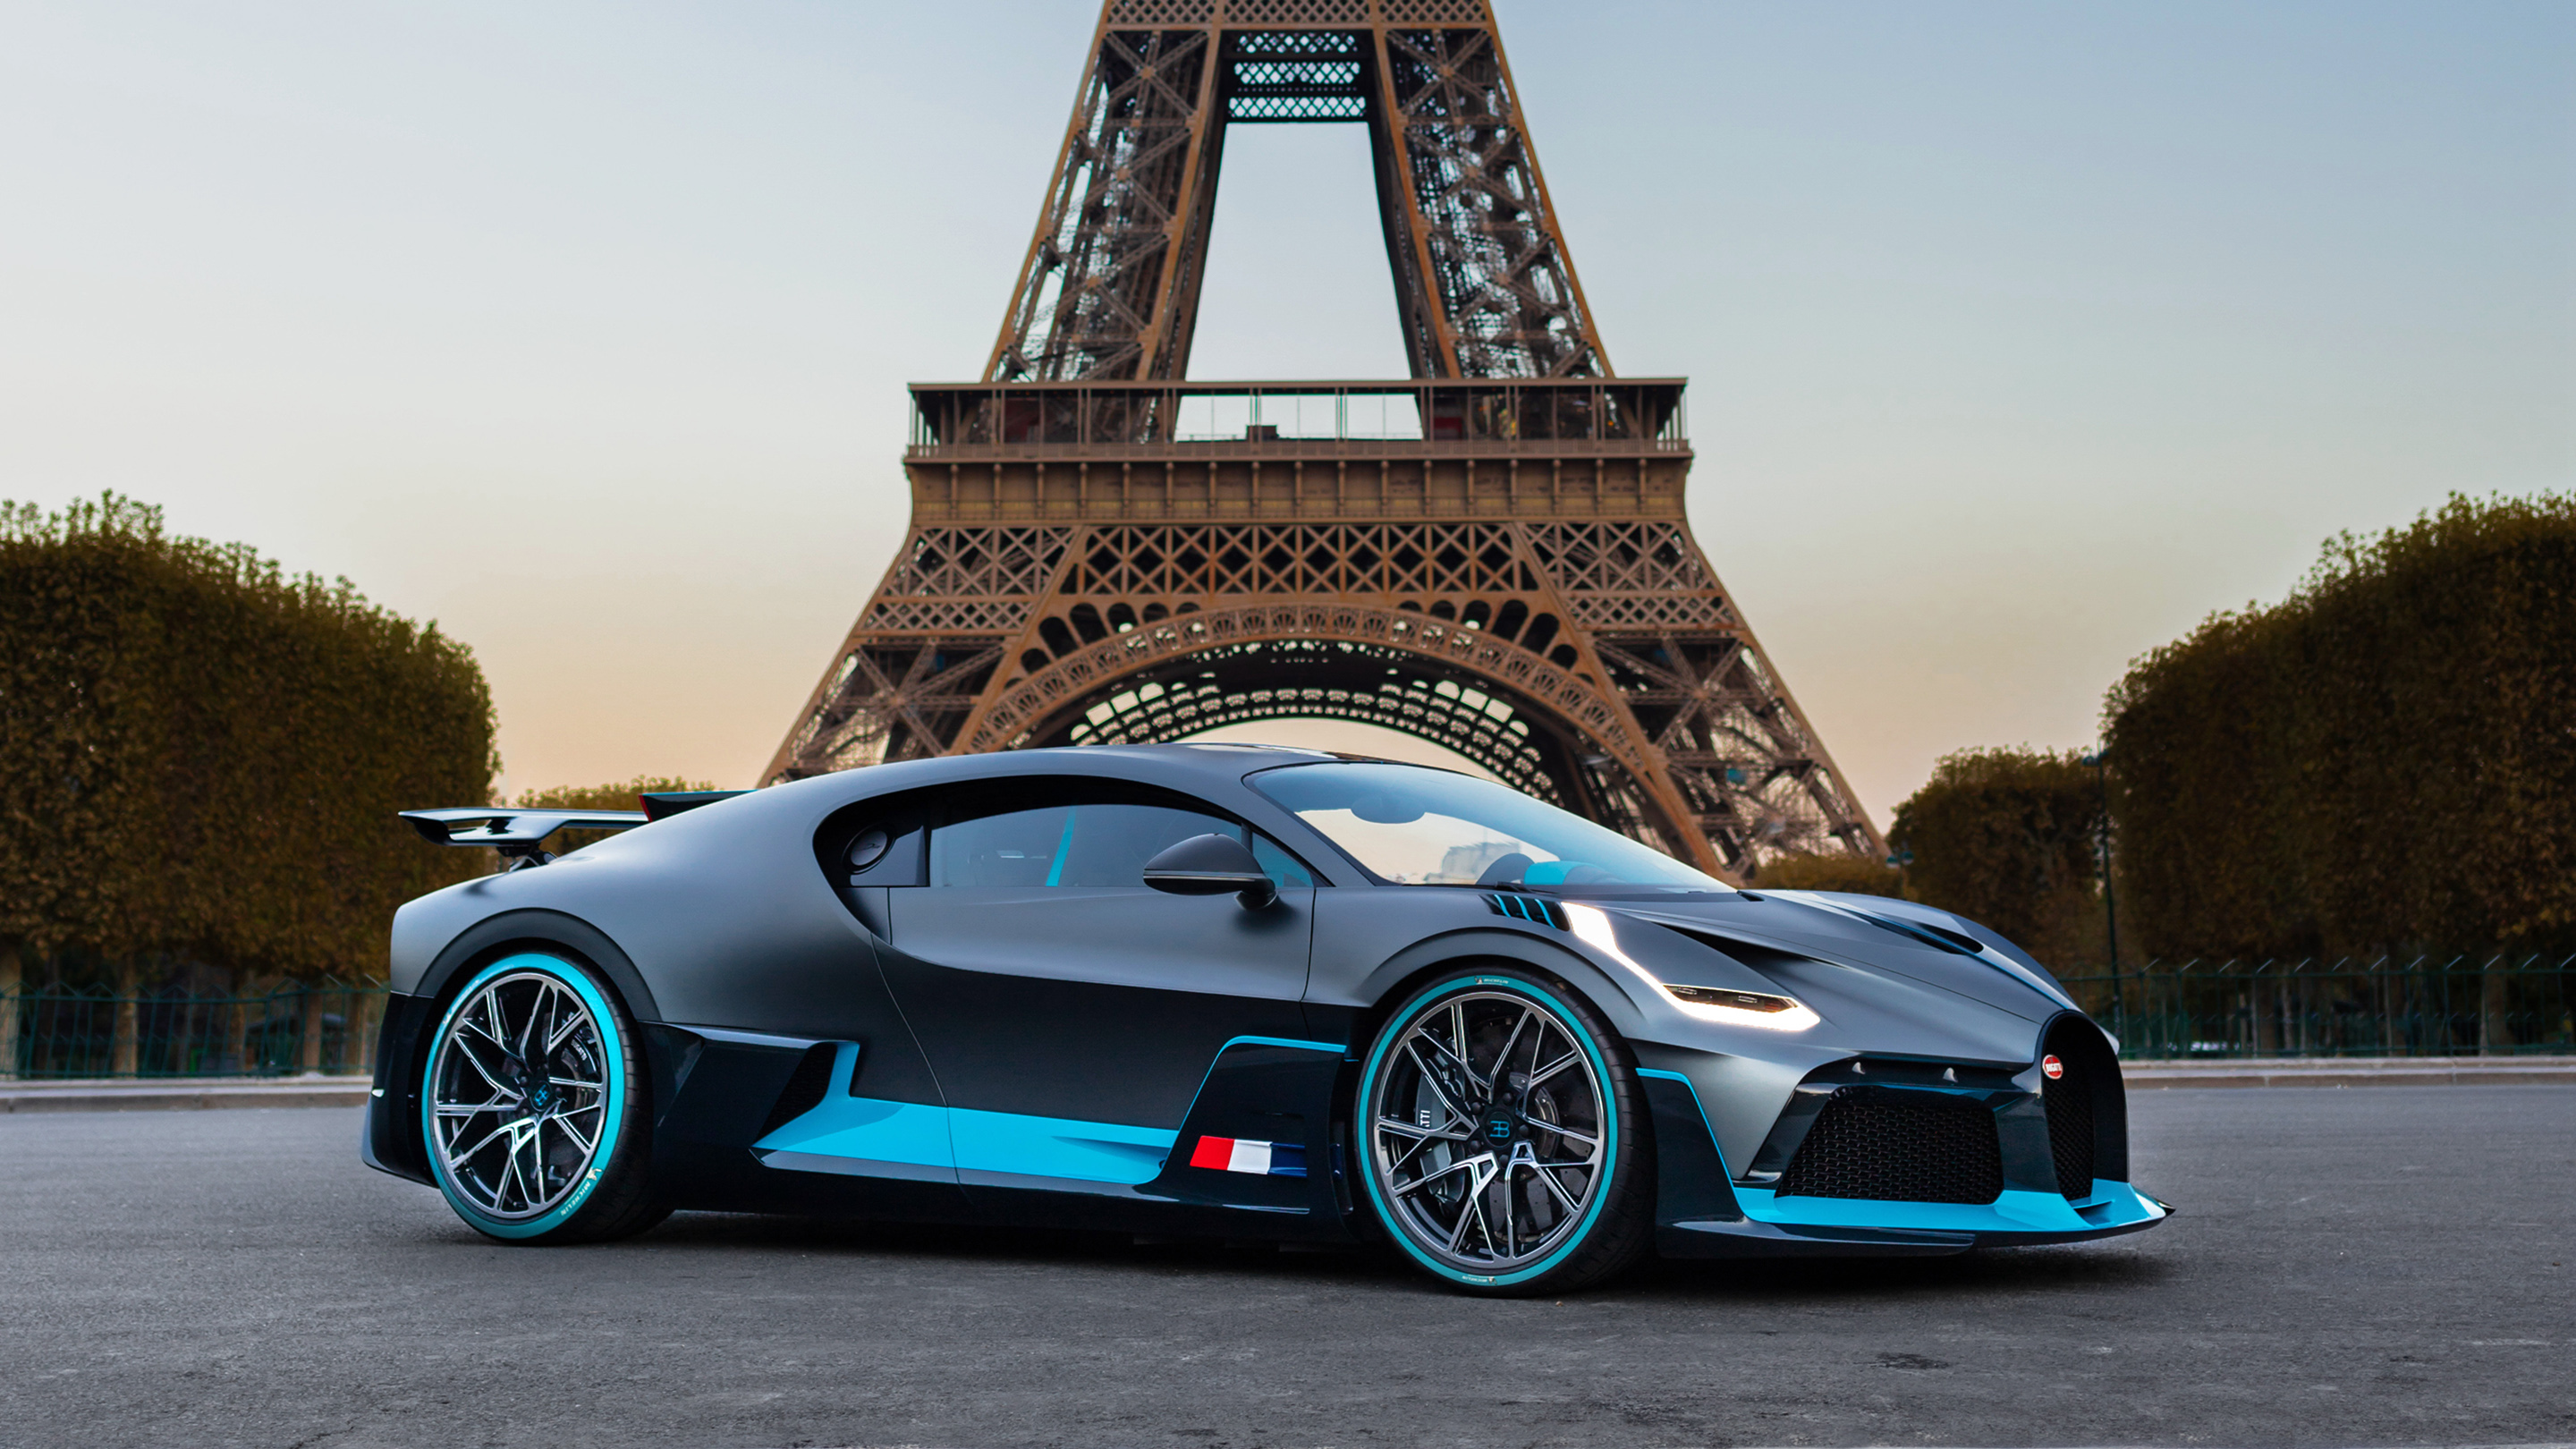 Top Hd Wallpapers Cars Wallpapers Desktop Hd: Bugatti Divo In Paris Wallpaper